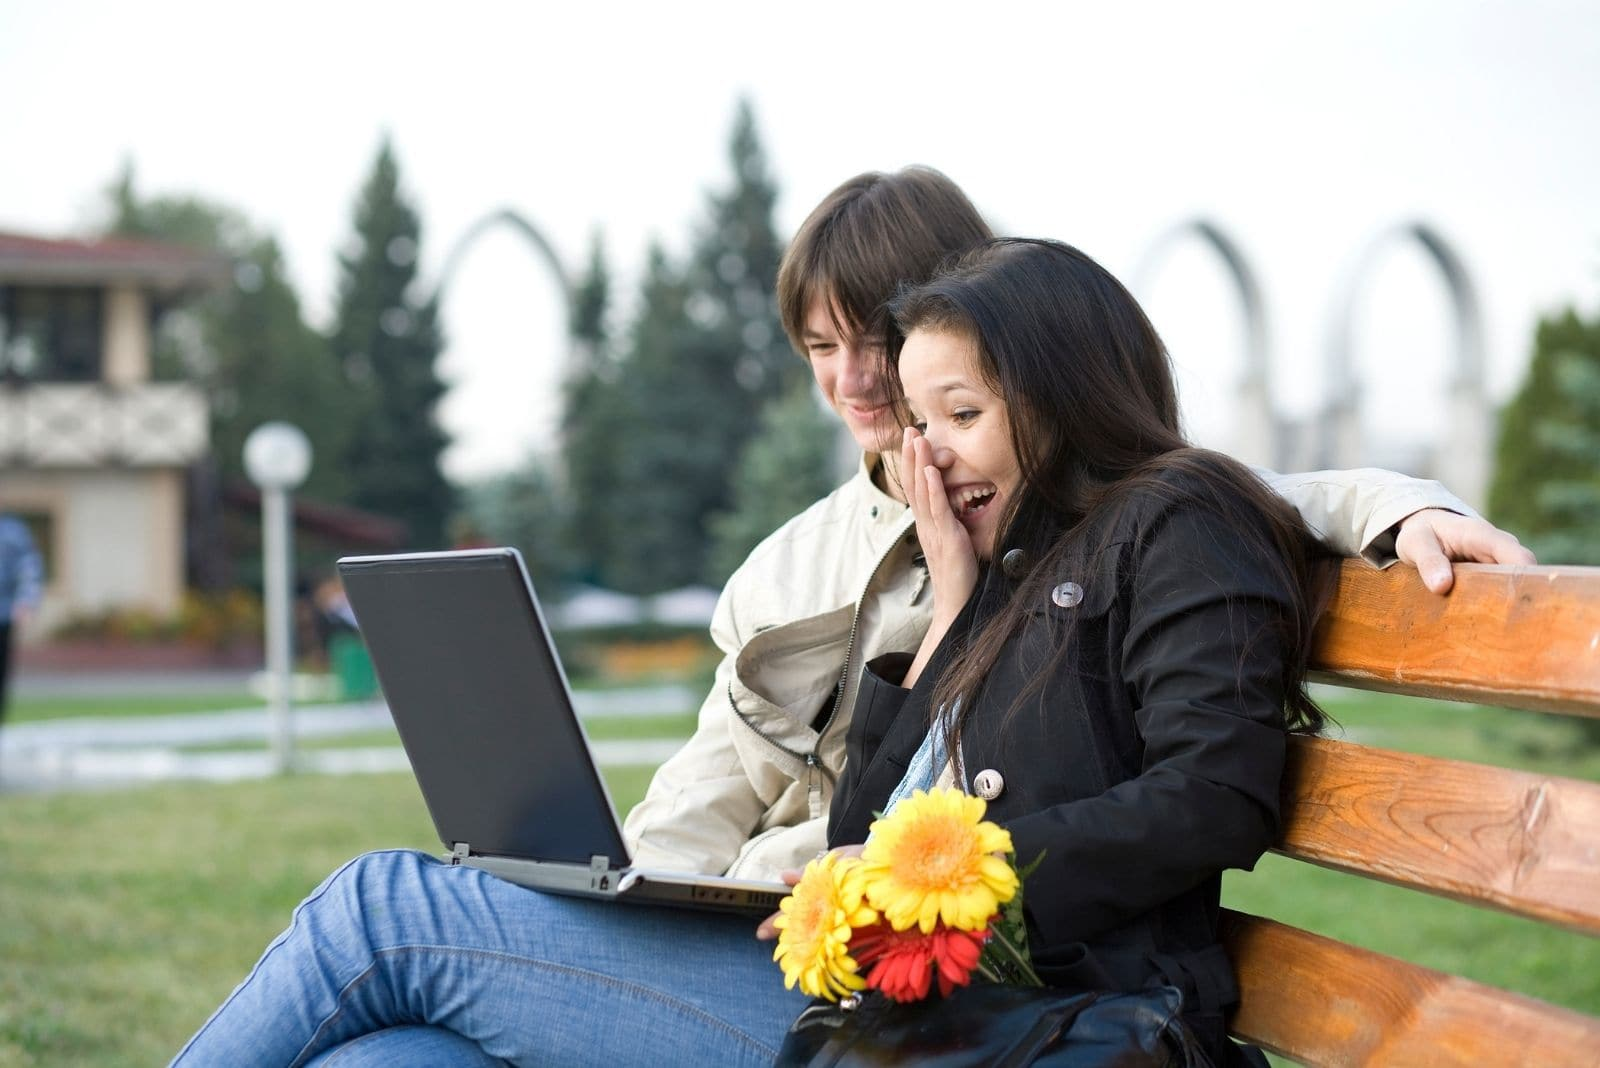 young couple watching movie on laptop while sitting on the bench outdoors